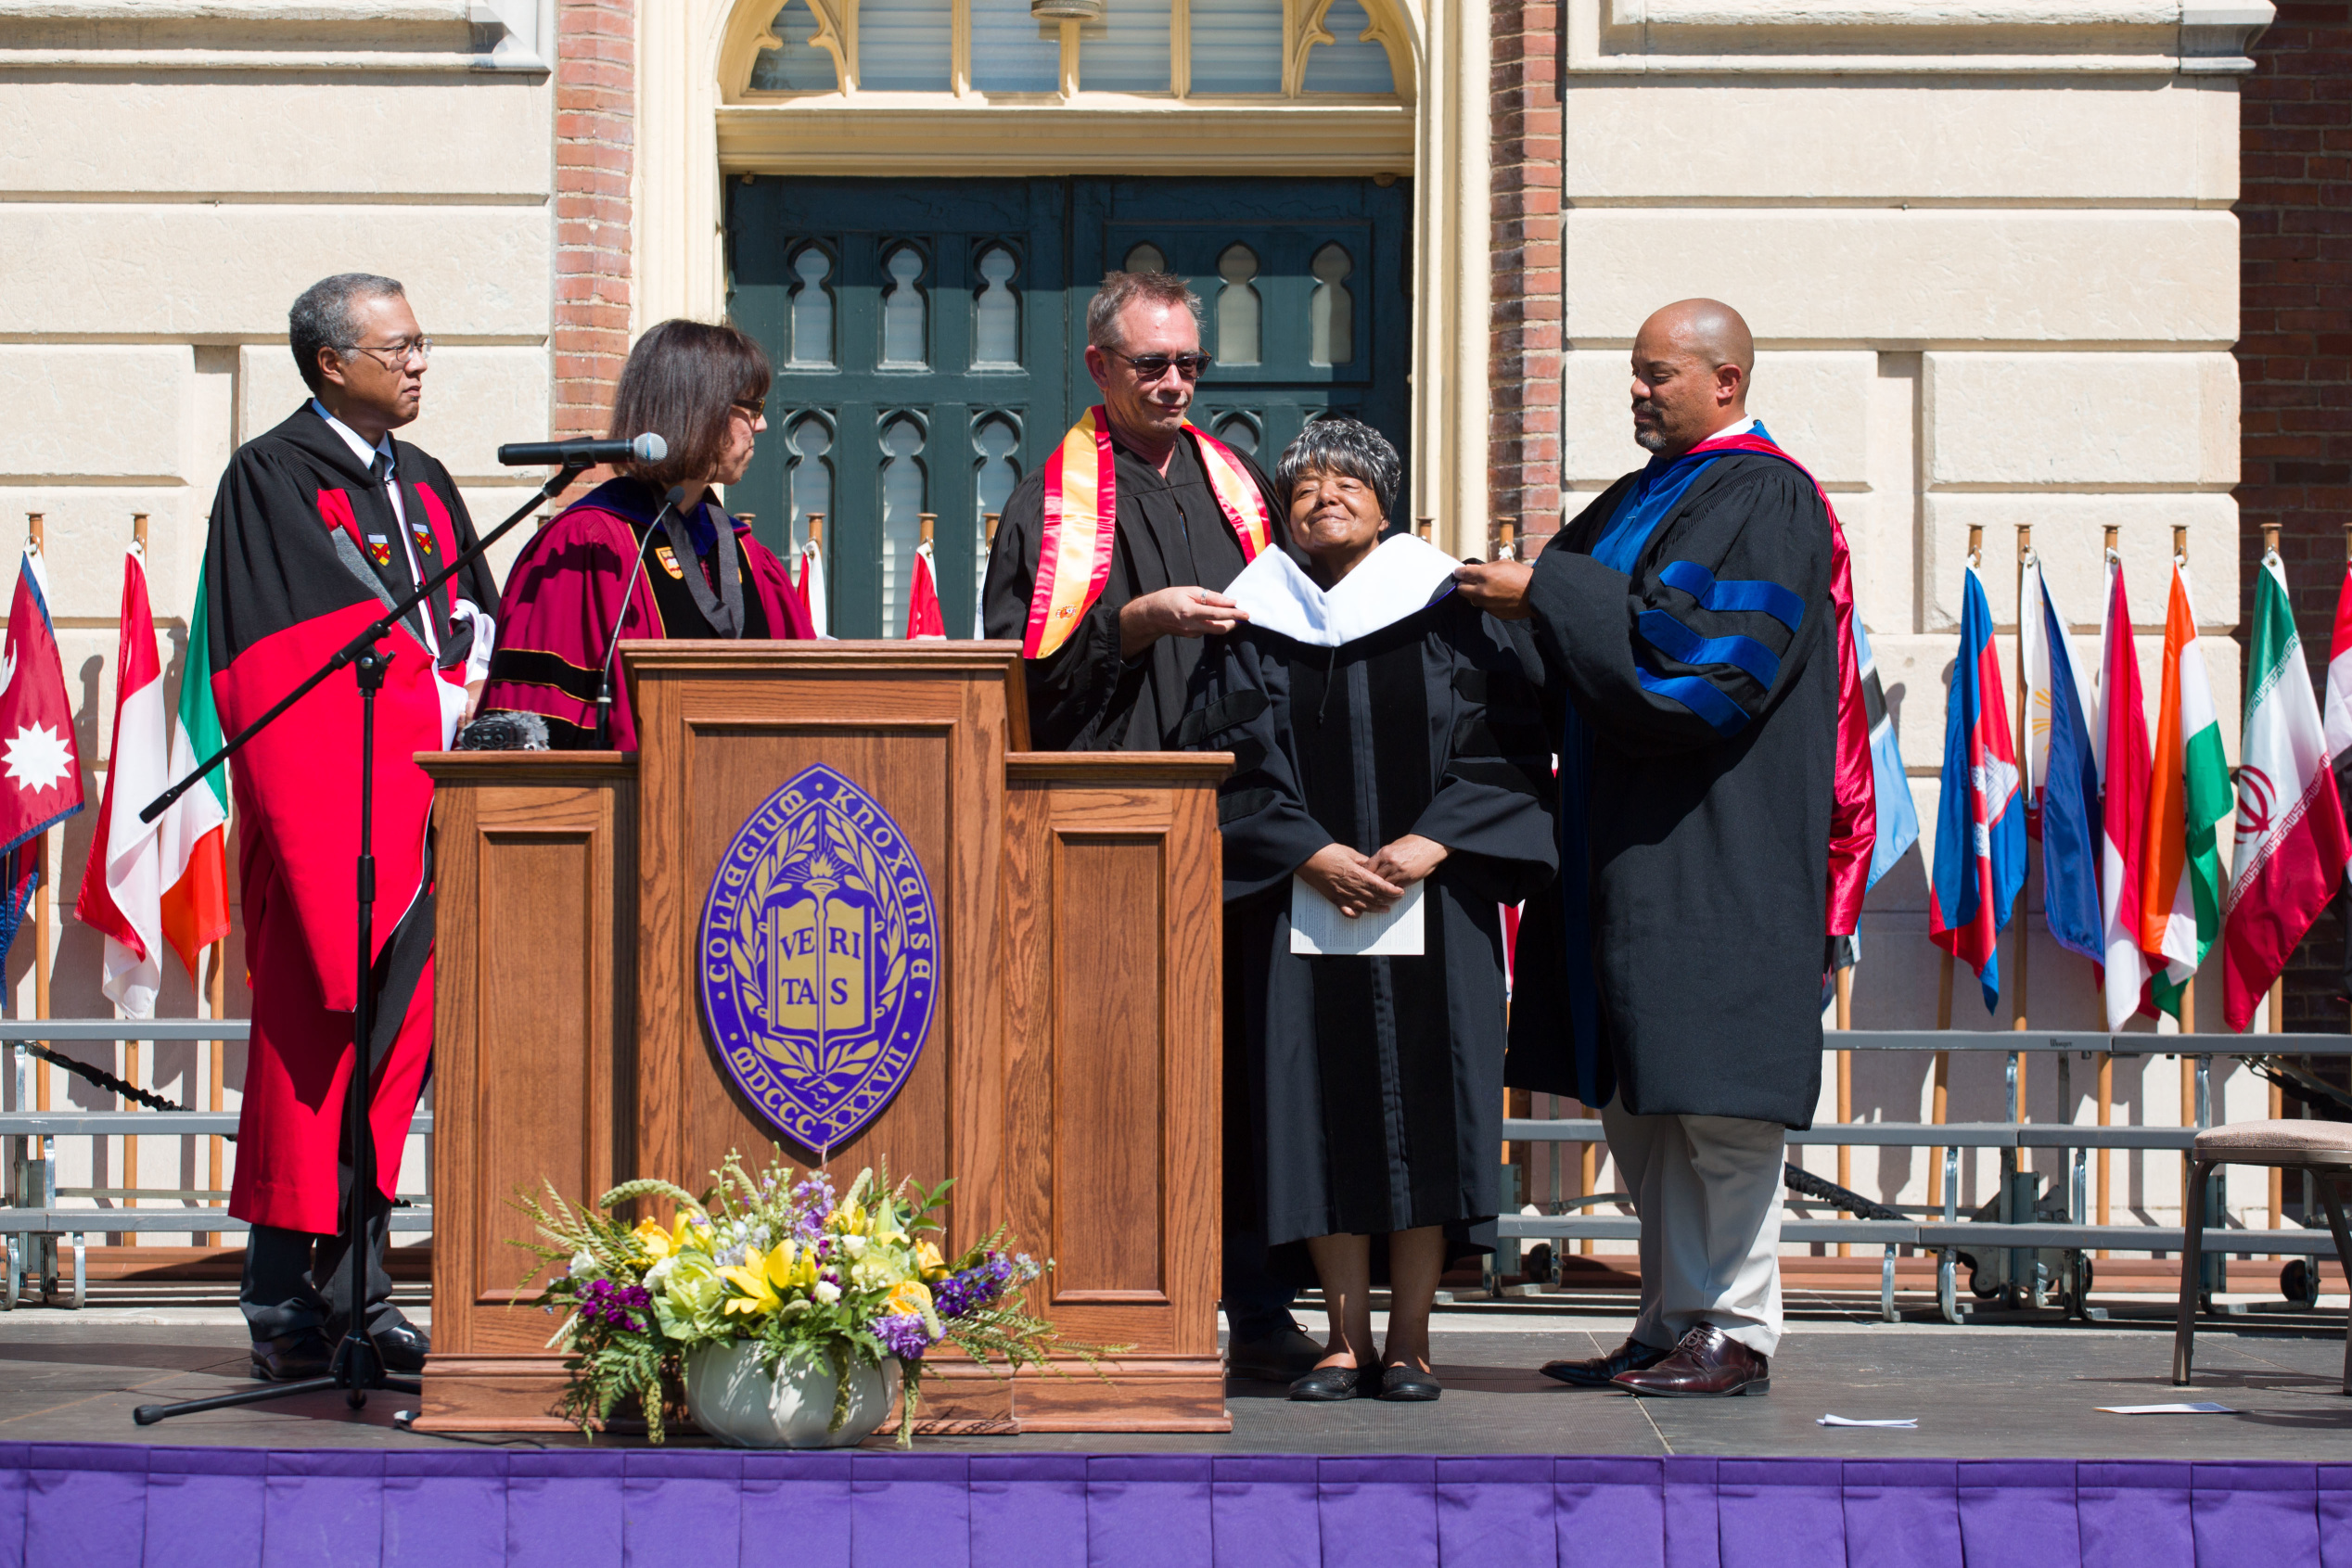 hooding of Elizabeth Eckford for honorary degree